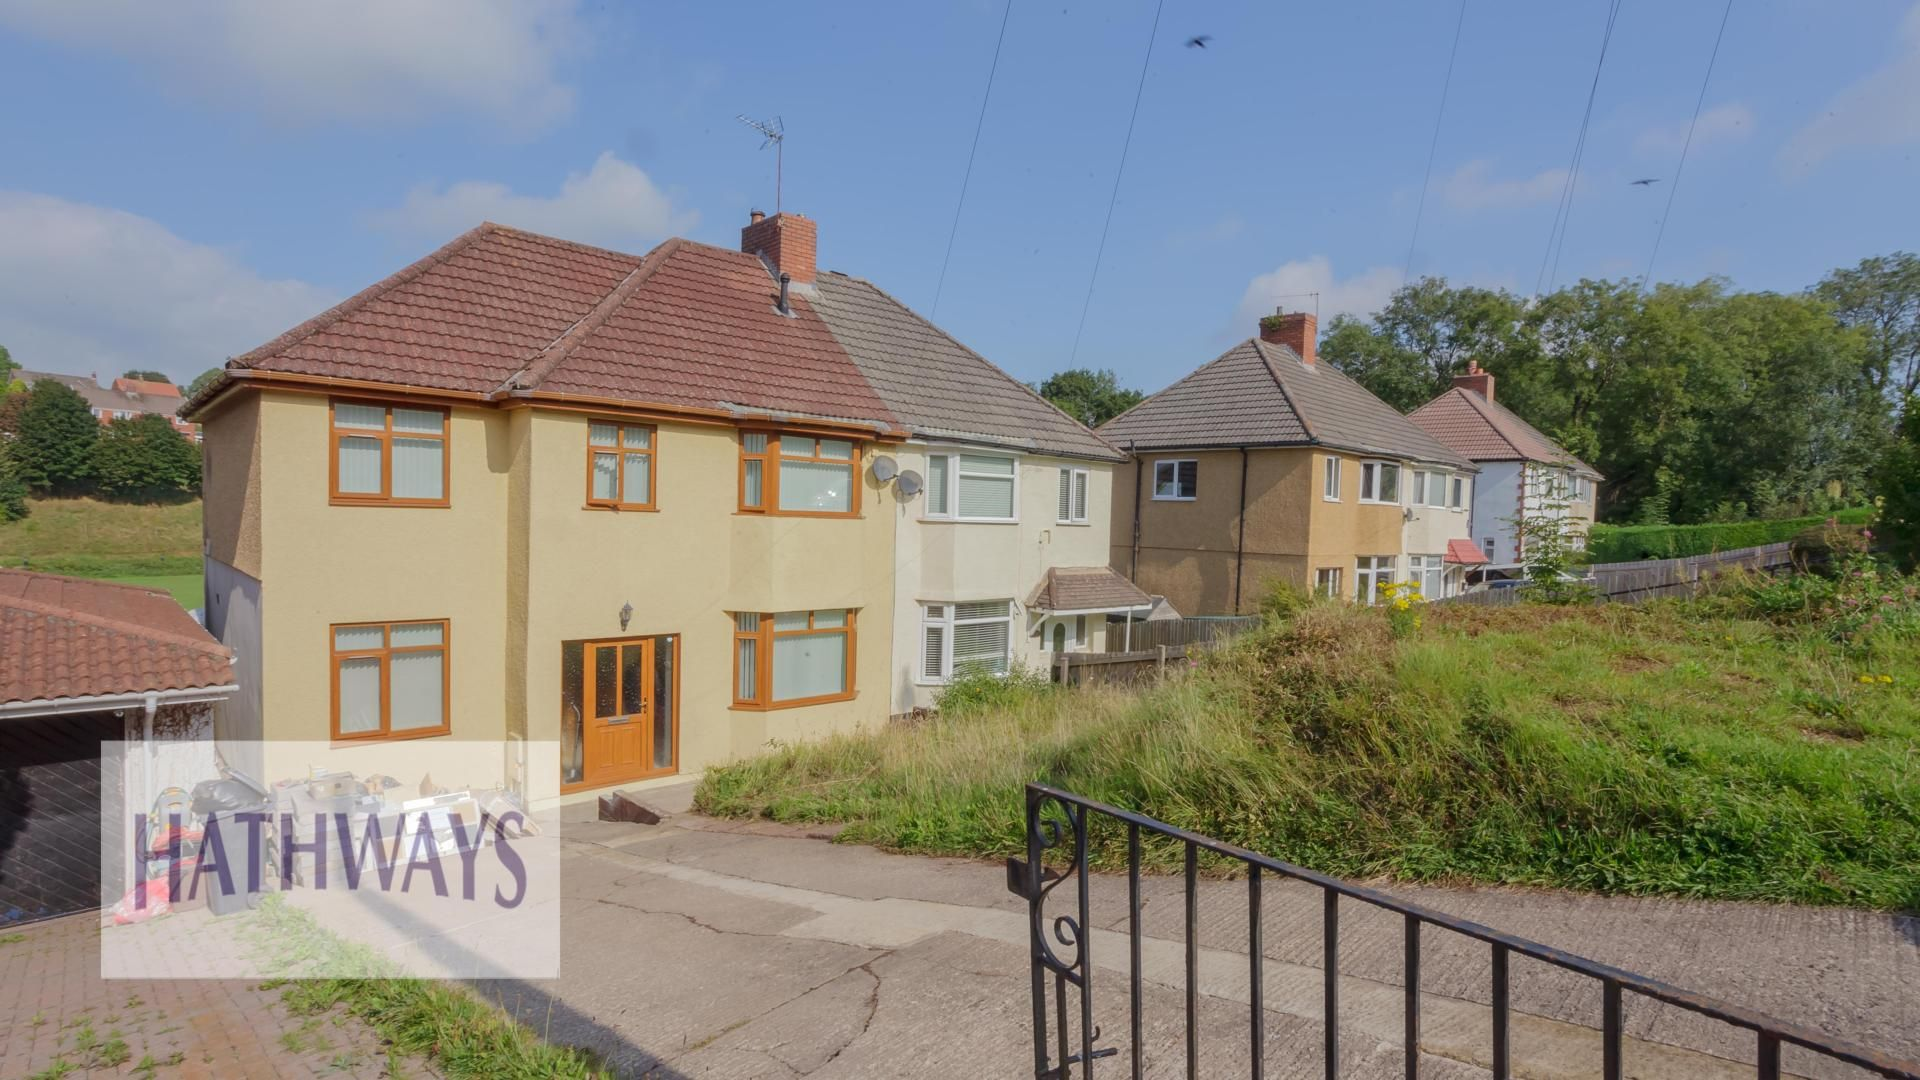 3 bed house for sale in Bassaleg Road, NP20